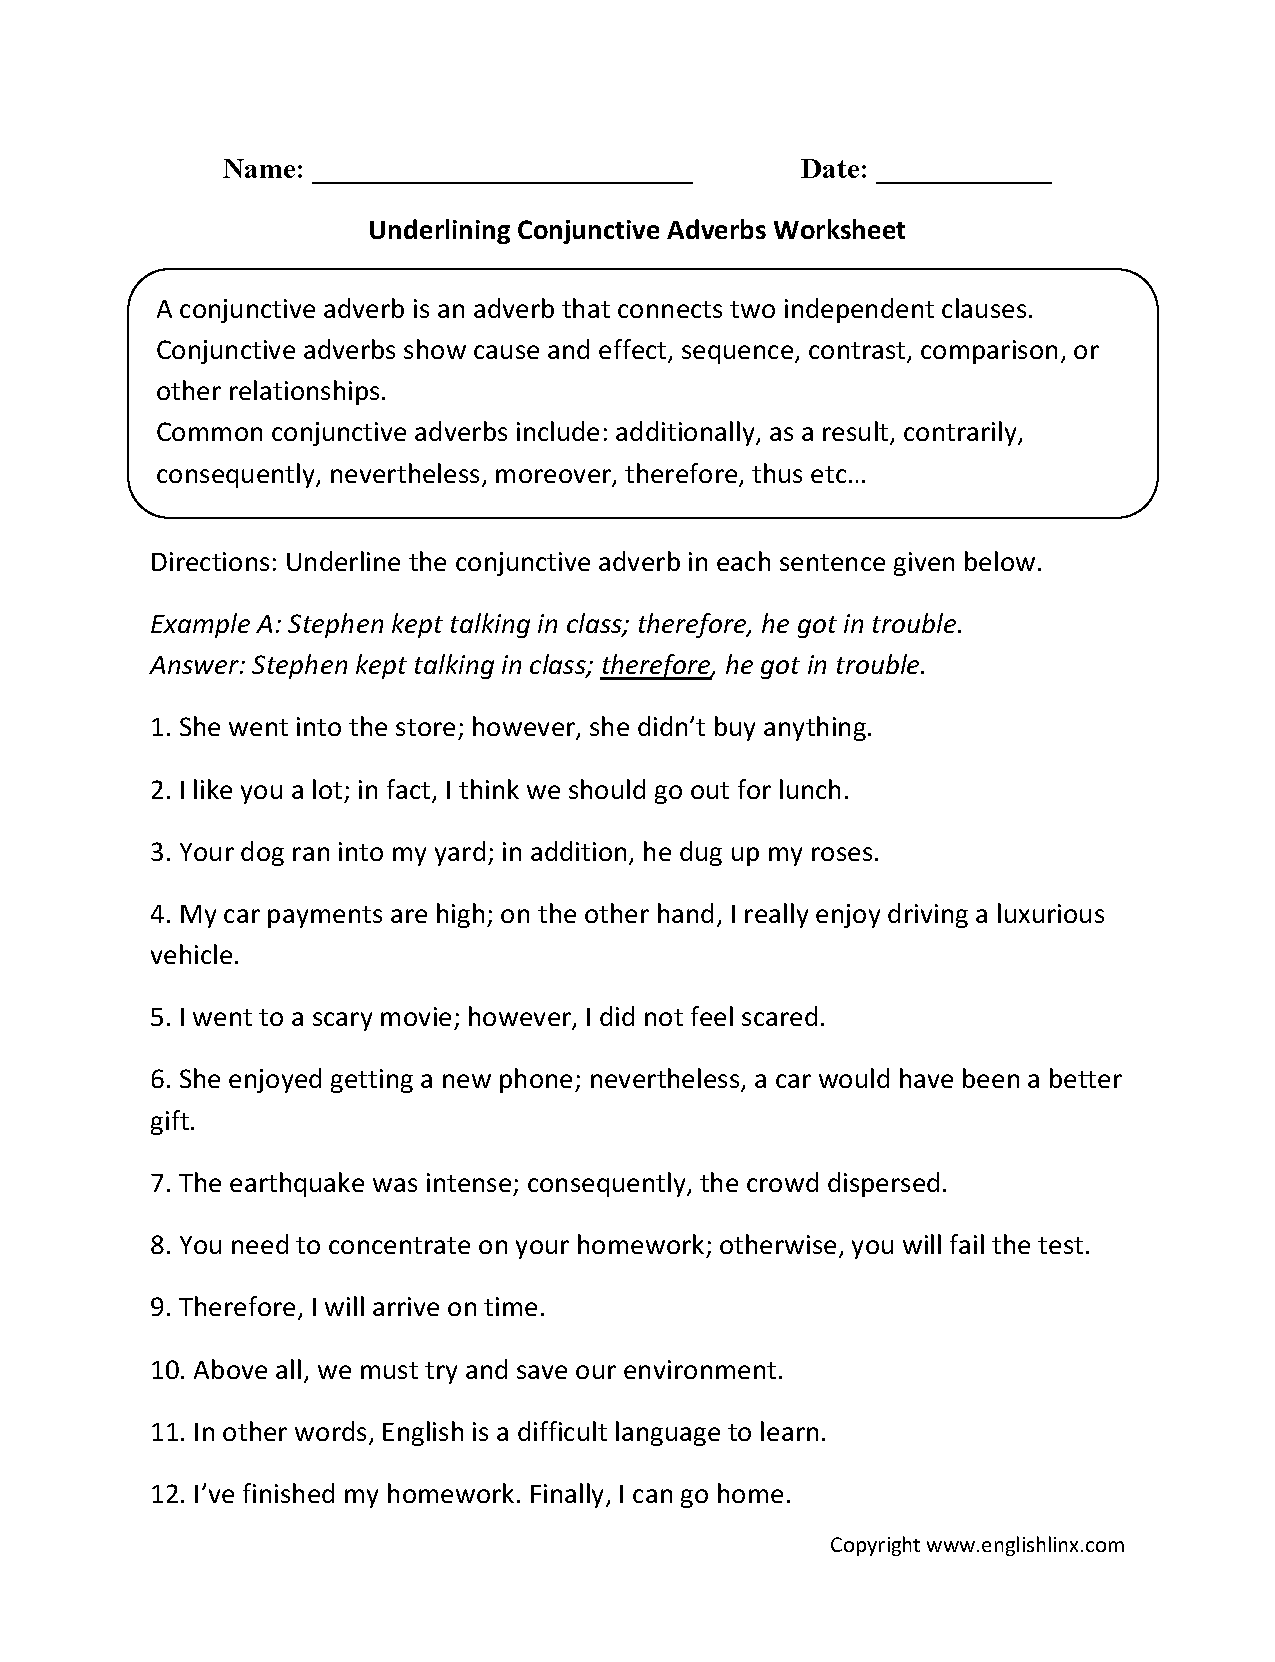 Weirdmailus  Wonderful Englishlinxcom  Conjunctions Worksheets With Excellent Worksheet With Appealing Passive And Active Voice Worksheets Also Graphing Worksheets Grade  In Addition  Digit Addition And Subtraction Word Problems Worksheets And Worksheets On Fact And Opinion As Well As Phase  Worksheets Additionally Math Worksheets Printable Multiplication From Englishlinxcom With Weirdmailus  Excellent Englishlinxcom  Conjunctions Worksheets With Appealing Worksheet And Wonderful Passive And Active Voice Worksheets Also Graphing Worksheets Grade  In Addition  Digit Addition And Subtraction Word Problems Worksheets From Englishlinxcom